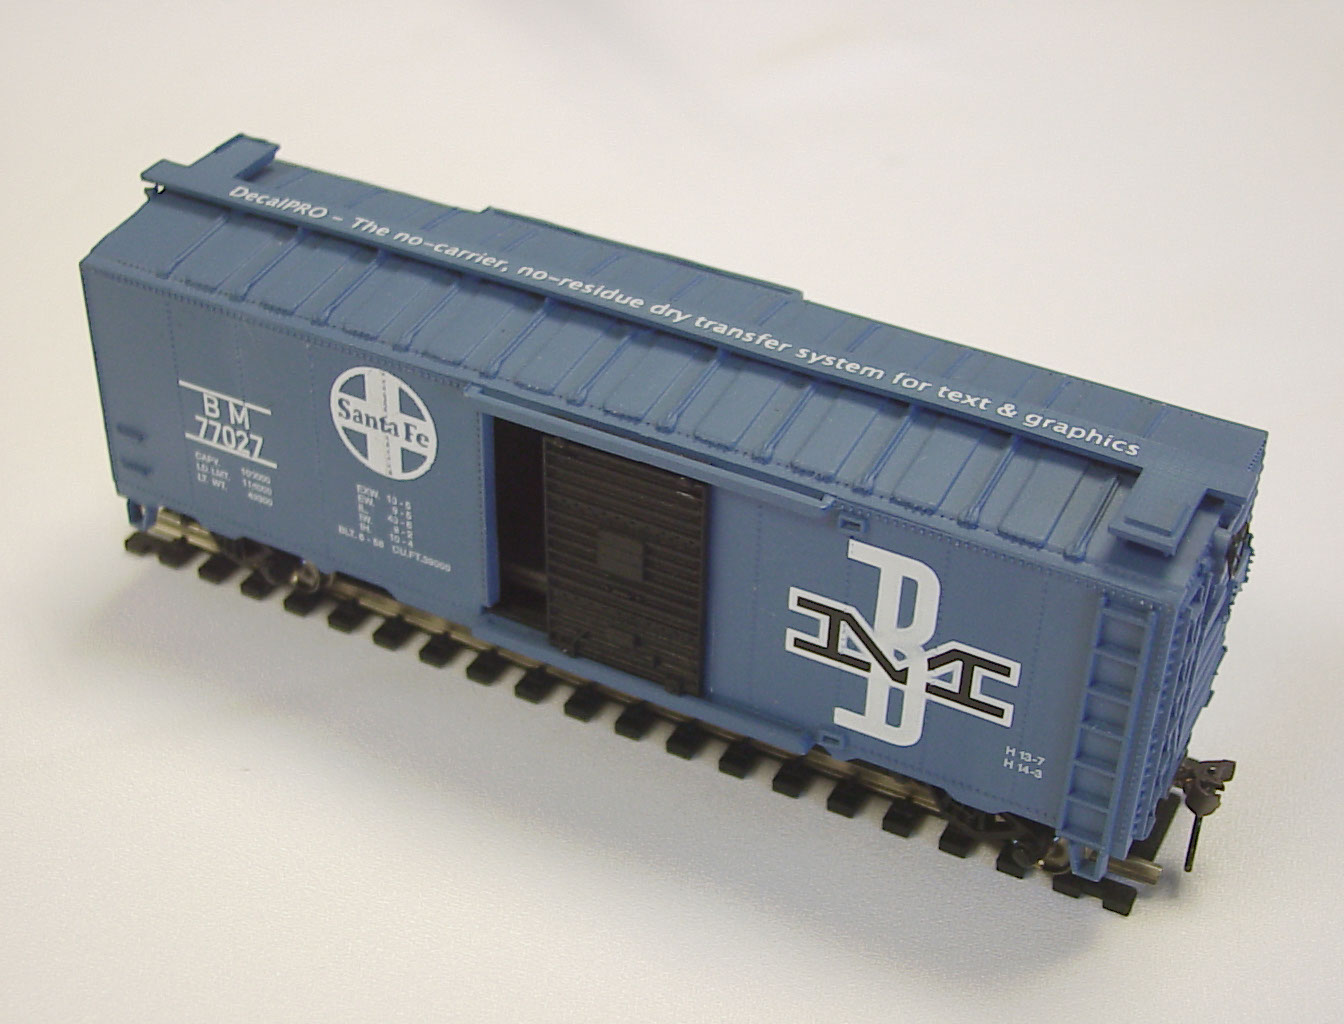 Photo: Text and graphics put on a plastic corrugated railroad car